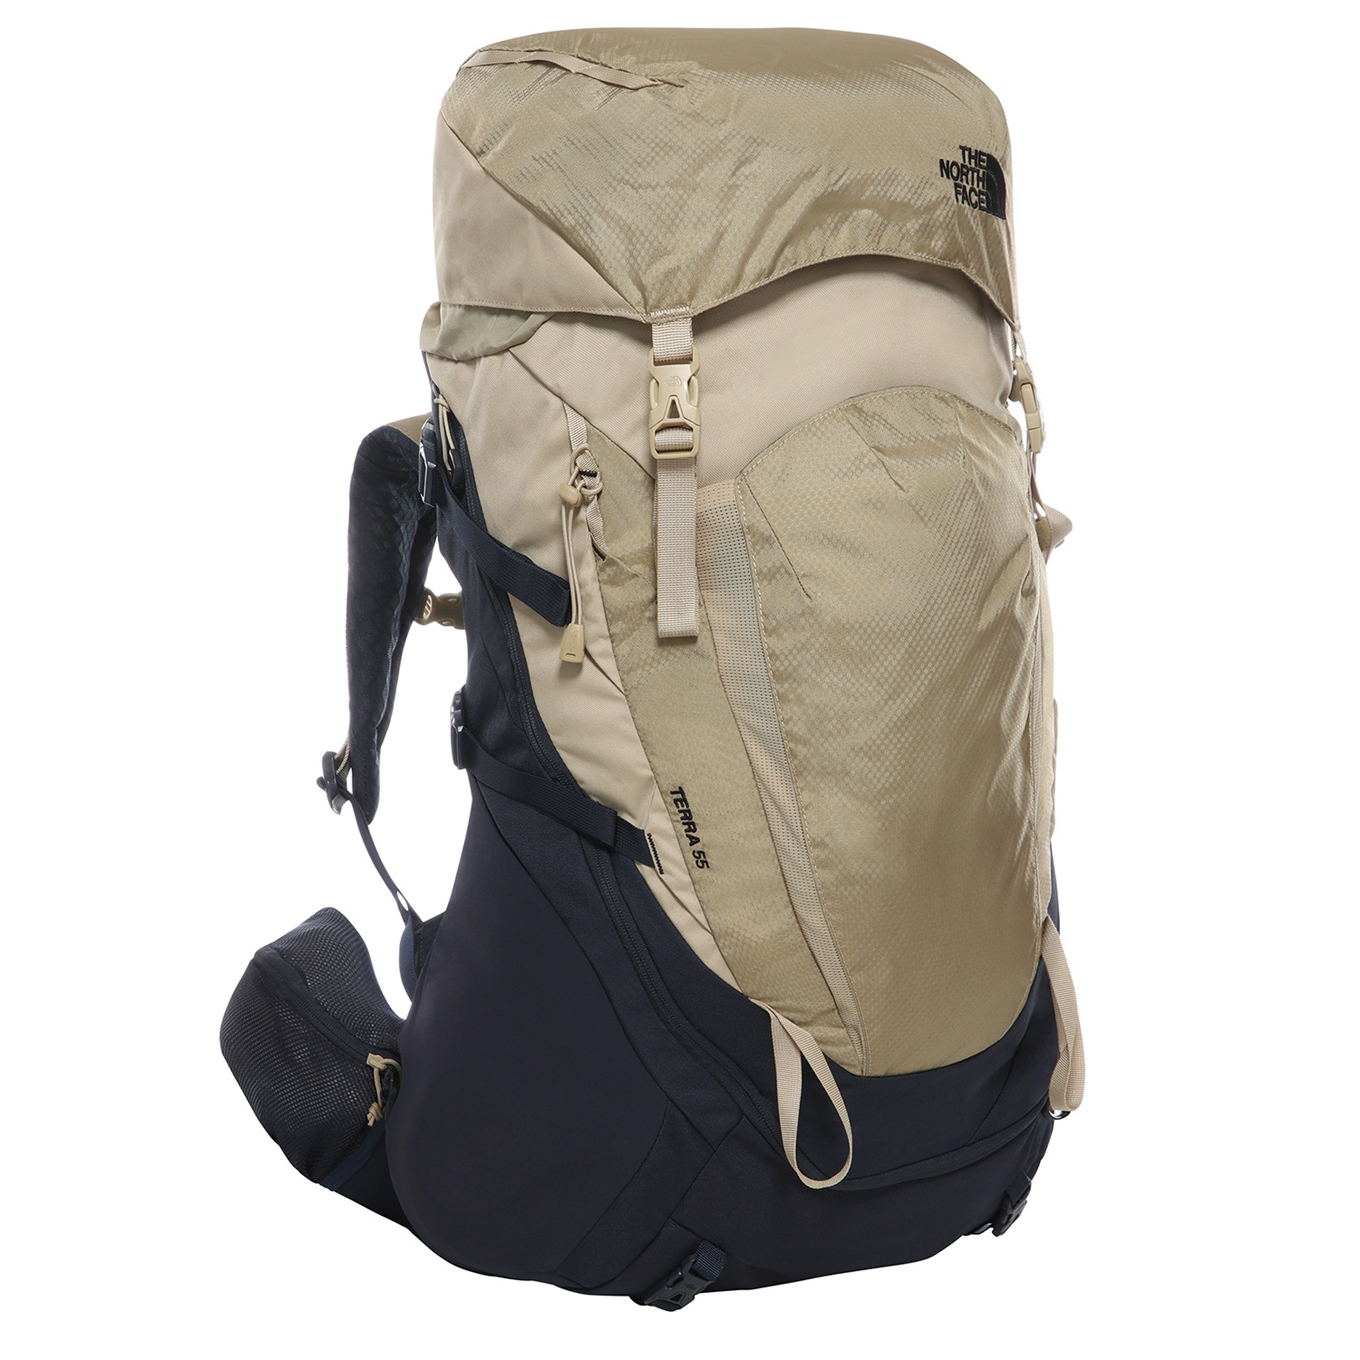 The North Face Terra 55 Women's Backpack XS/S urban navy / twill beige back